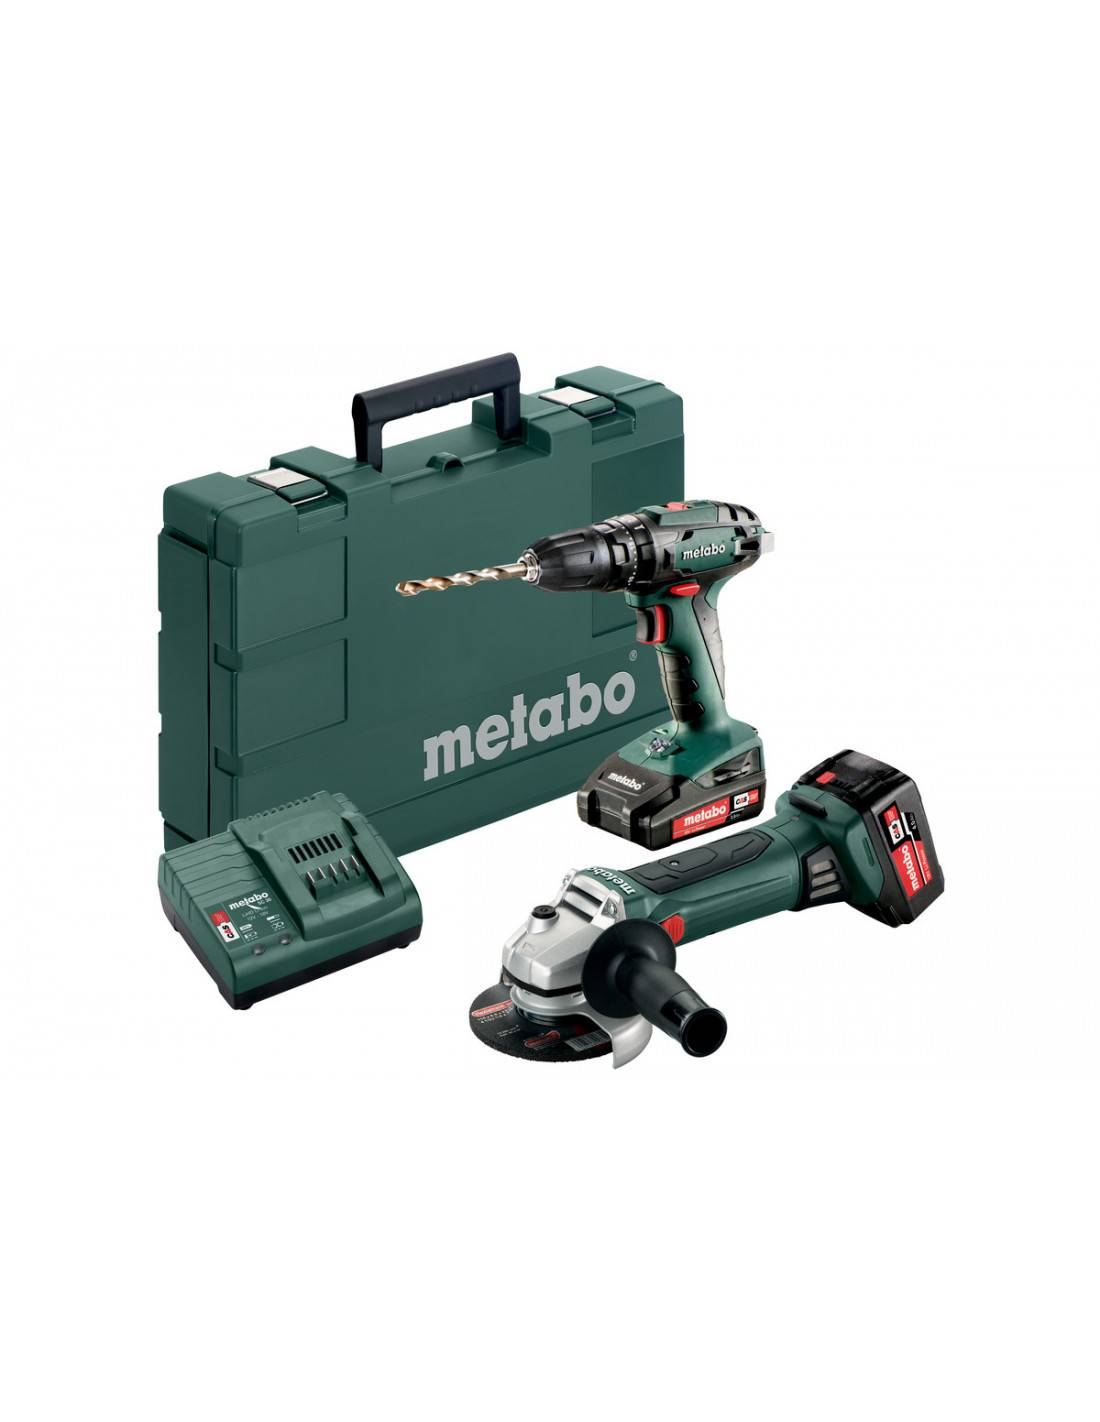 Pack perceuse à percussion SB 18 et meuleuse d'angle W 18 LTX 125 Quick en coffret standard - METABO - 685089000